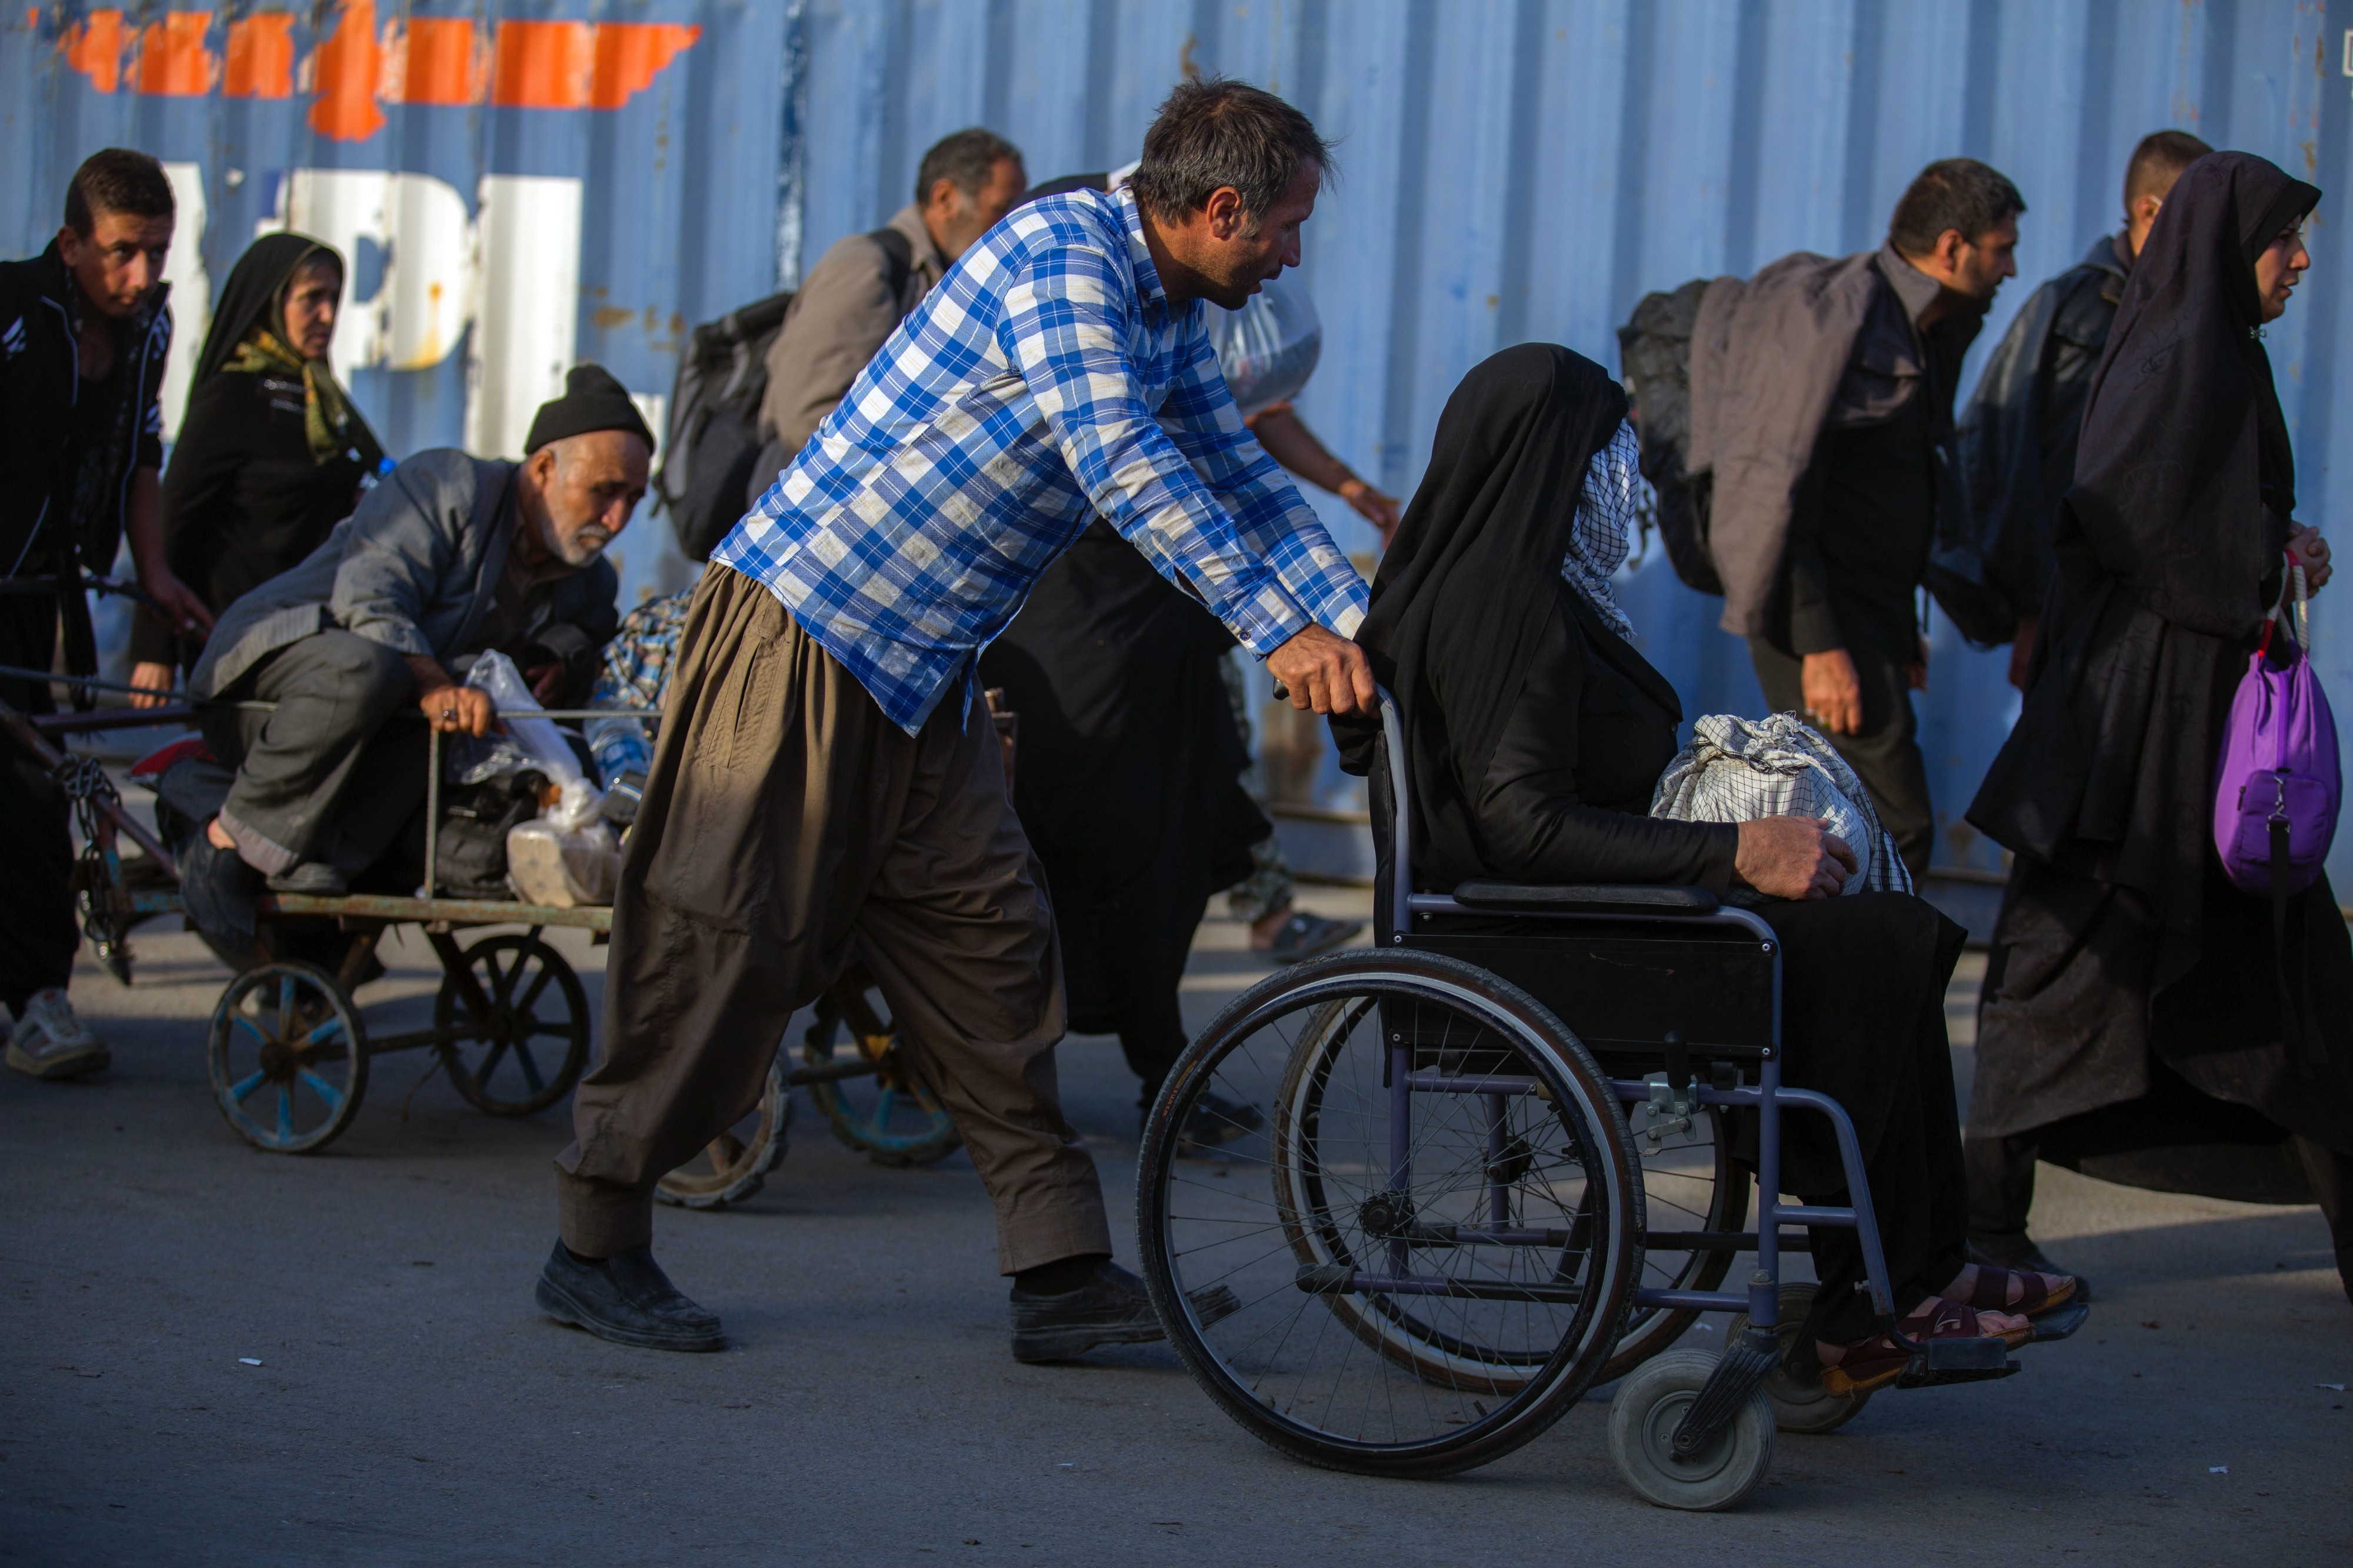 Middle Eastern man pushing woman dressed in an abaya in a wheelchair in crowded city setting